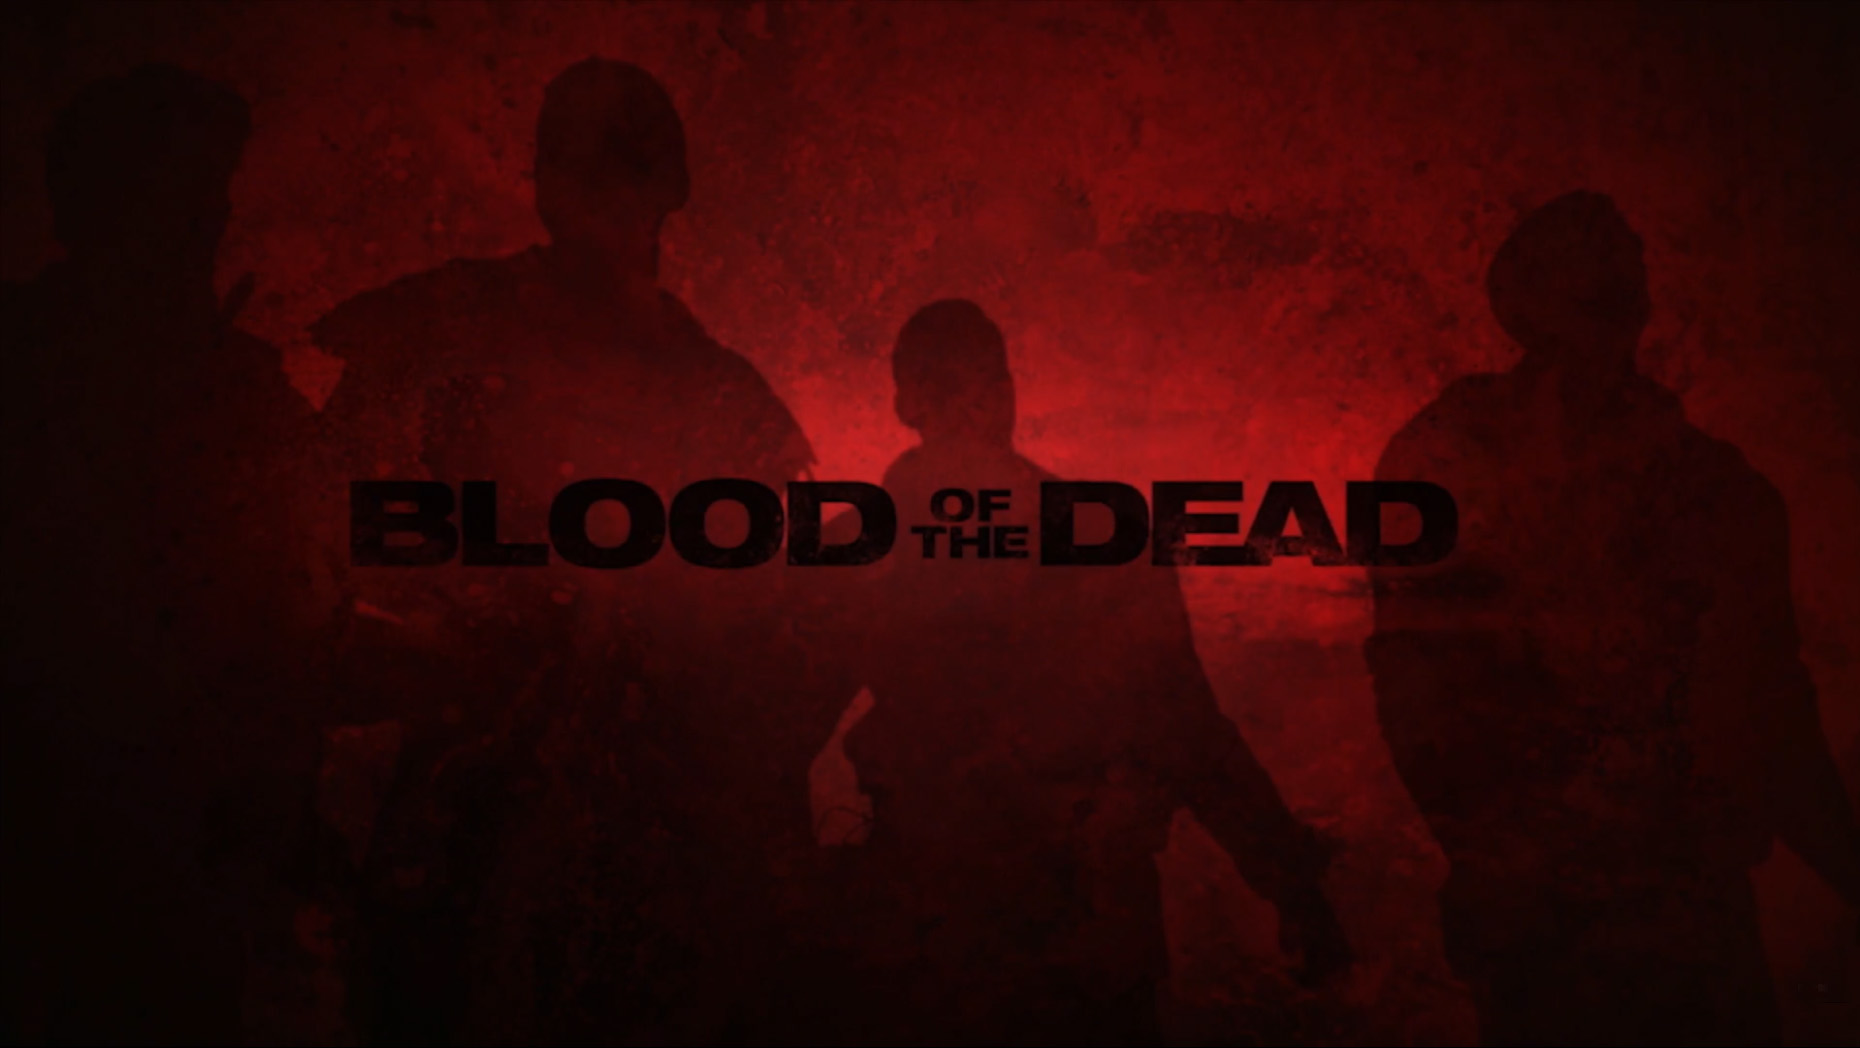 Blood-of-the-dead